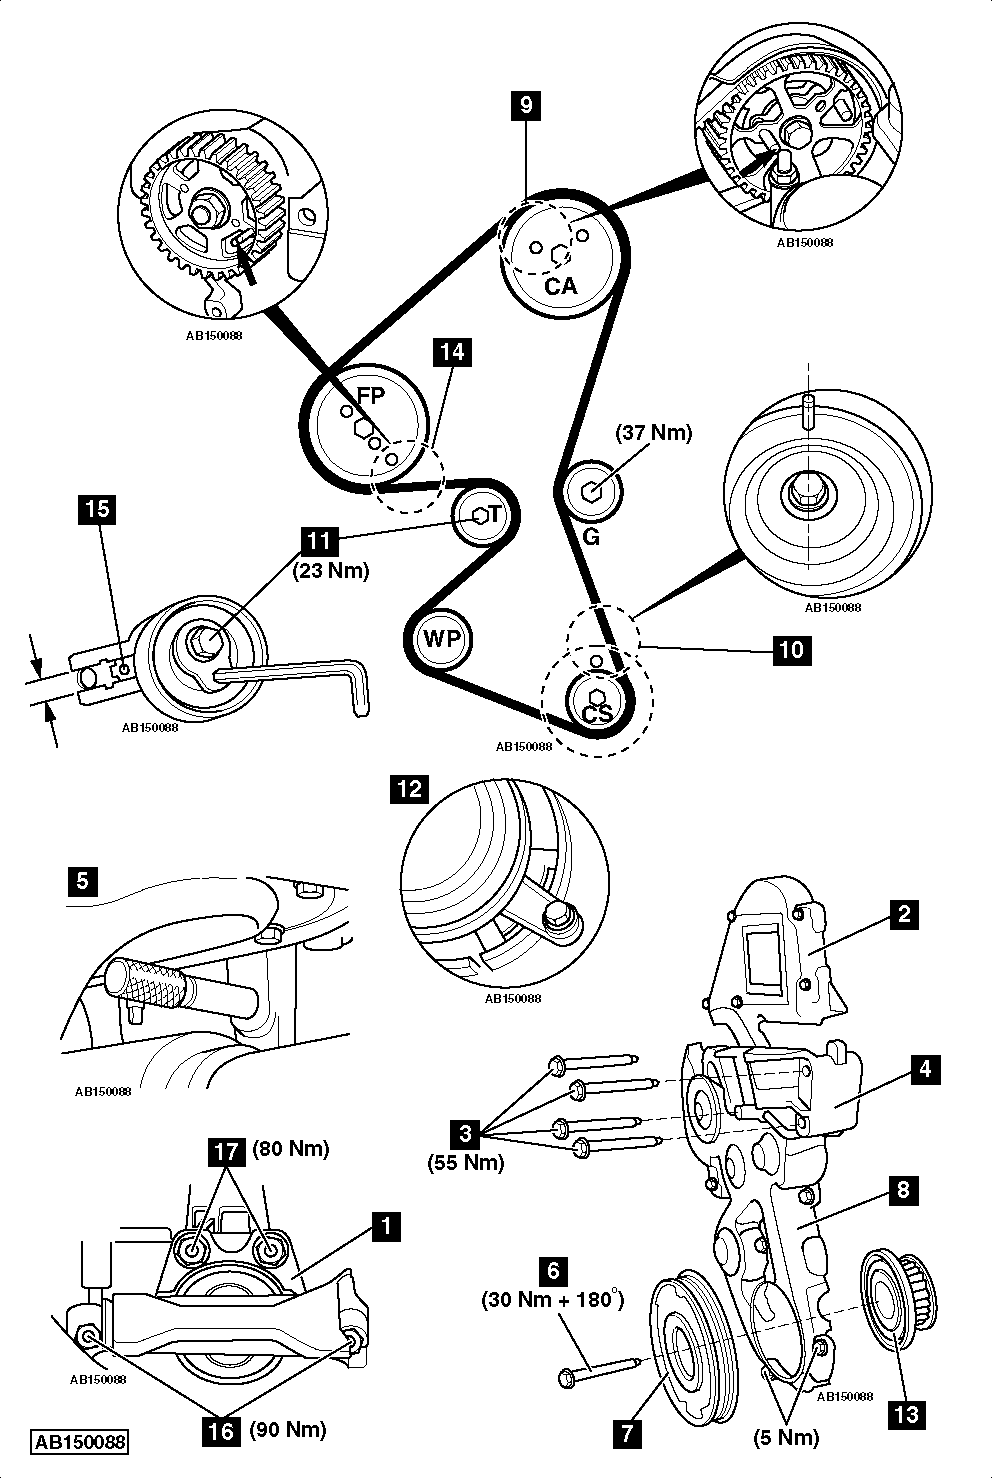 2008 Saab 9 3 Cooling System Diagram All Kind Of Wiring Diagrams Engine 2 0 Get Free Image About 5 Parts Washer Pump